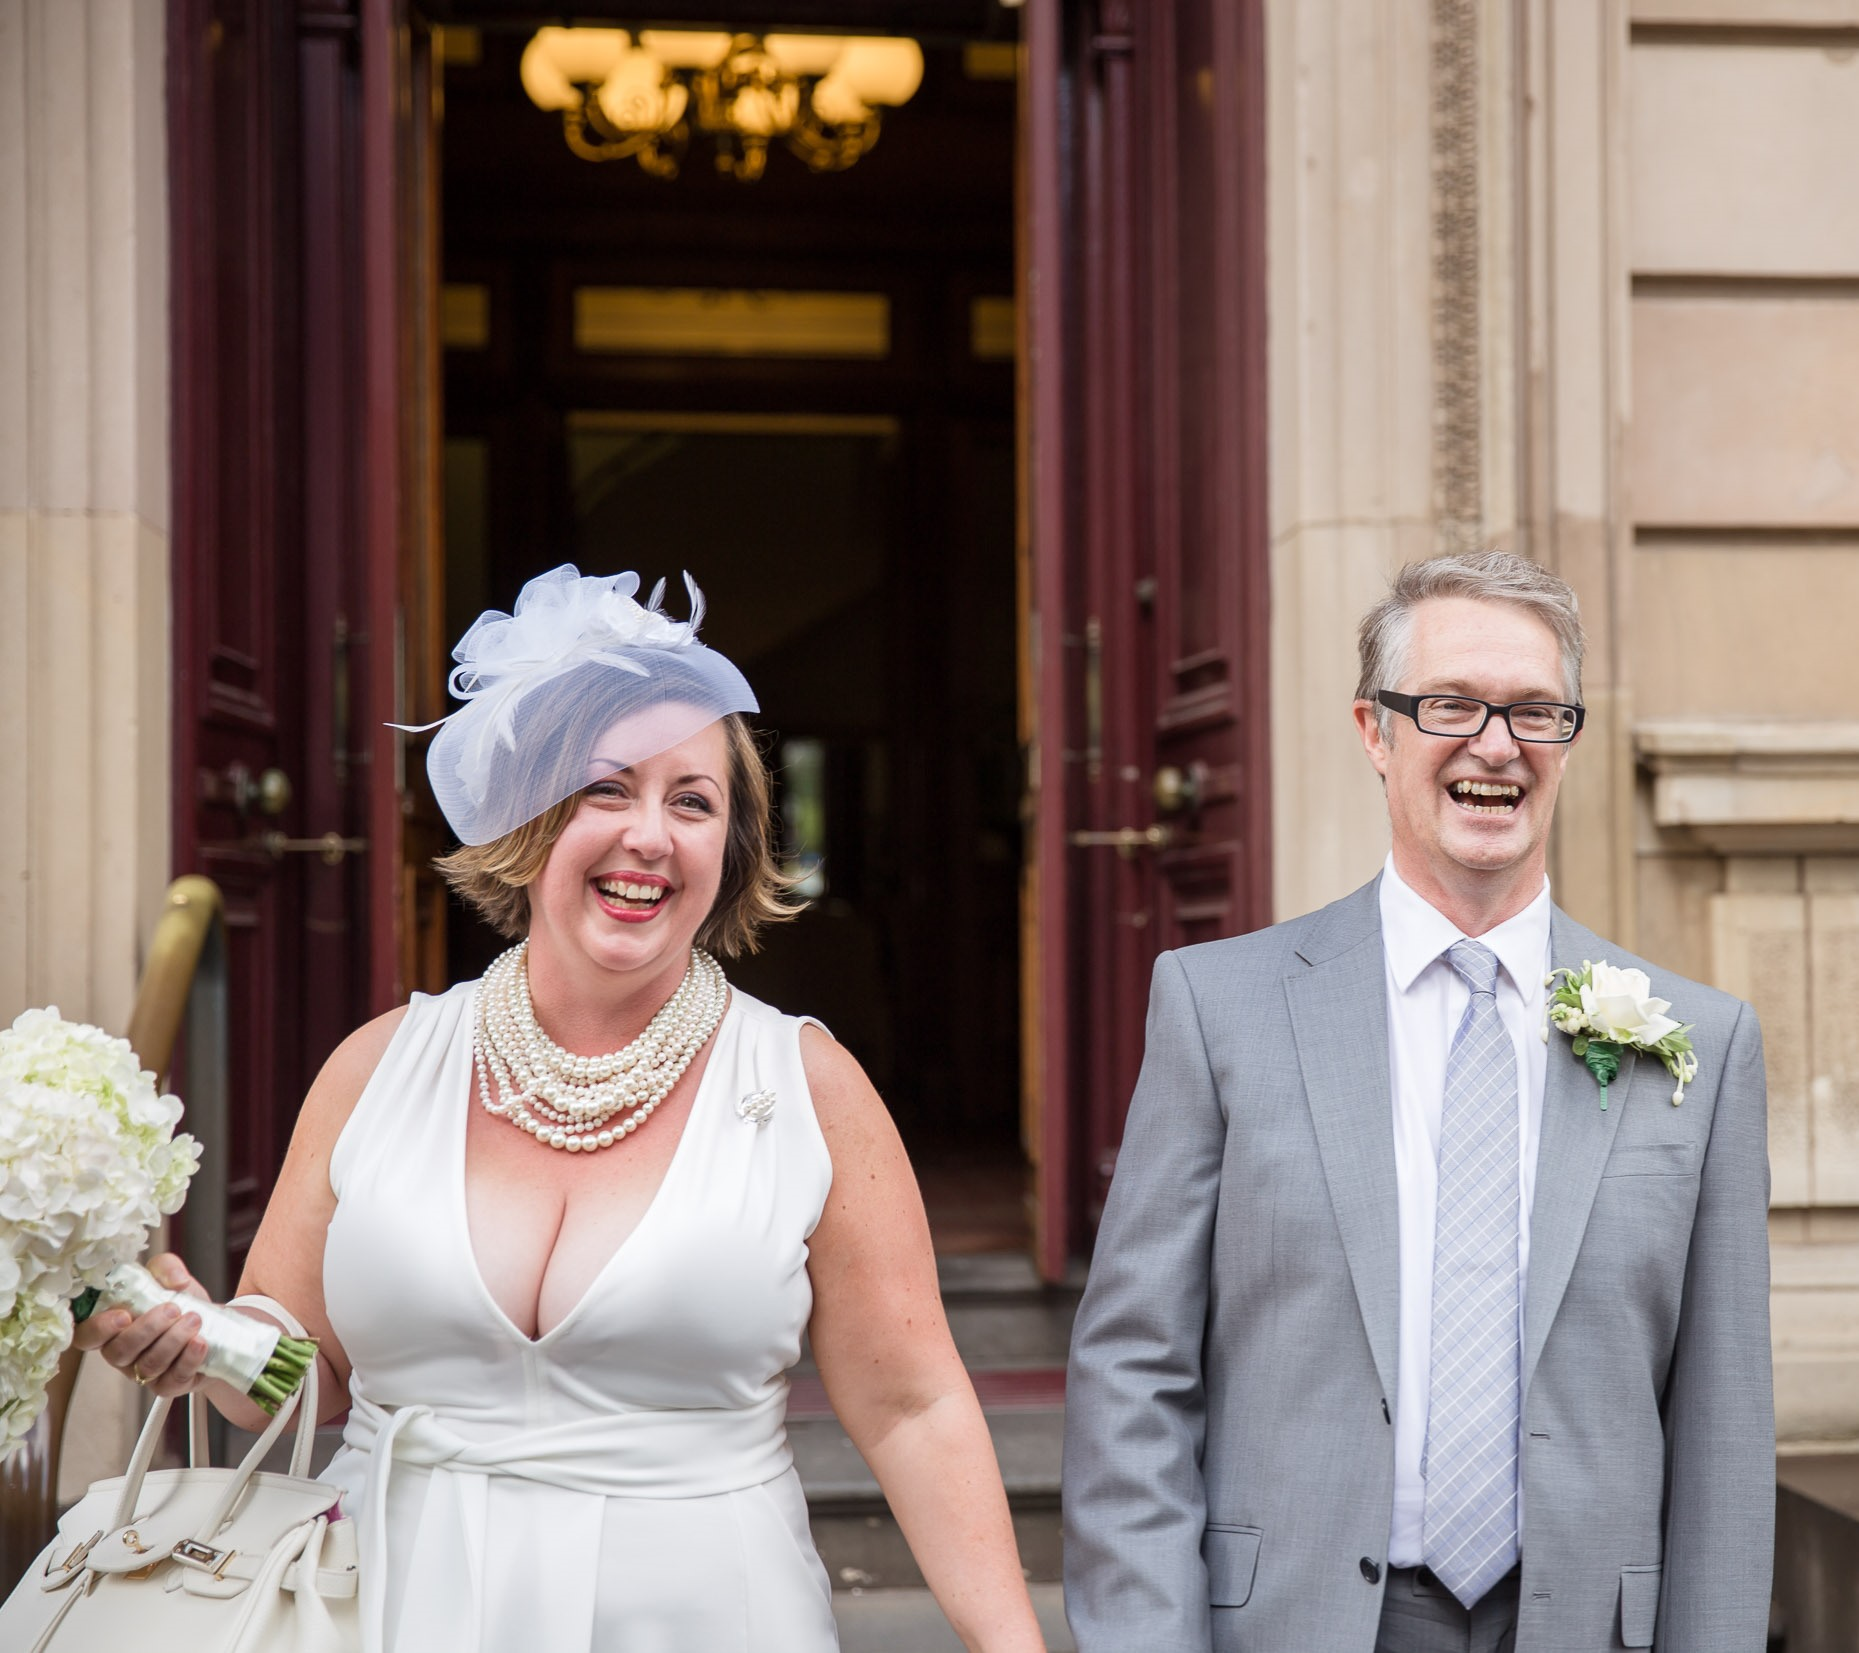 A LUSCIOUS WEDDING: Mr & Mrs Luscious outside the Melbourne Registry Office - March 2016